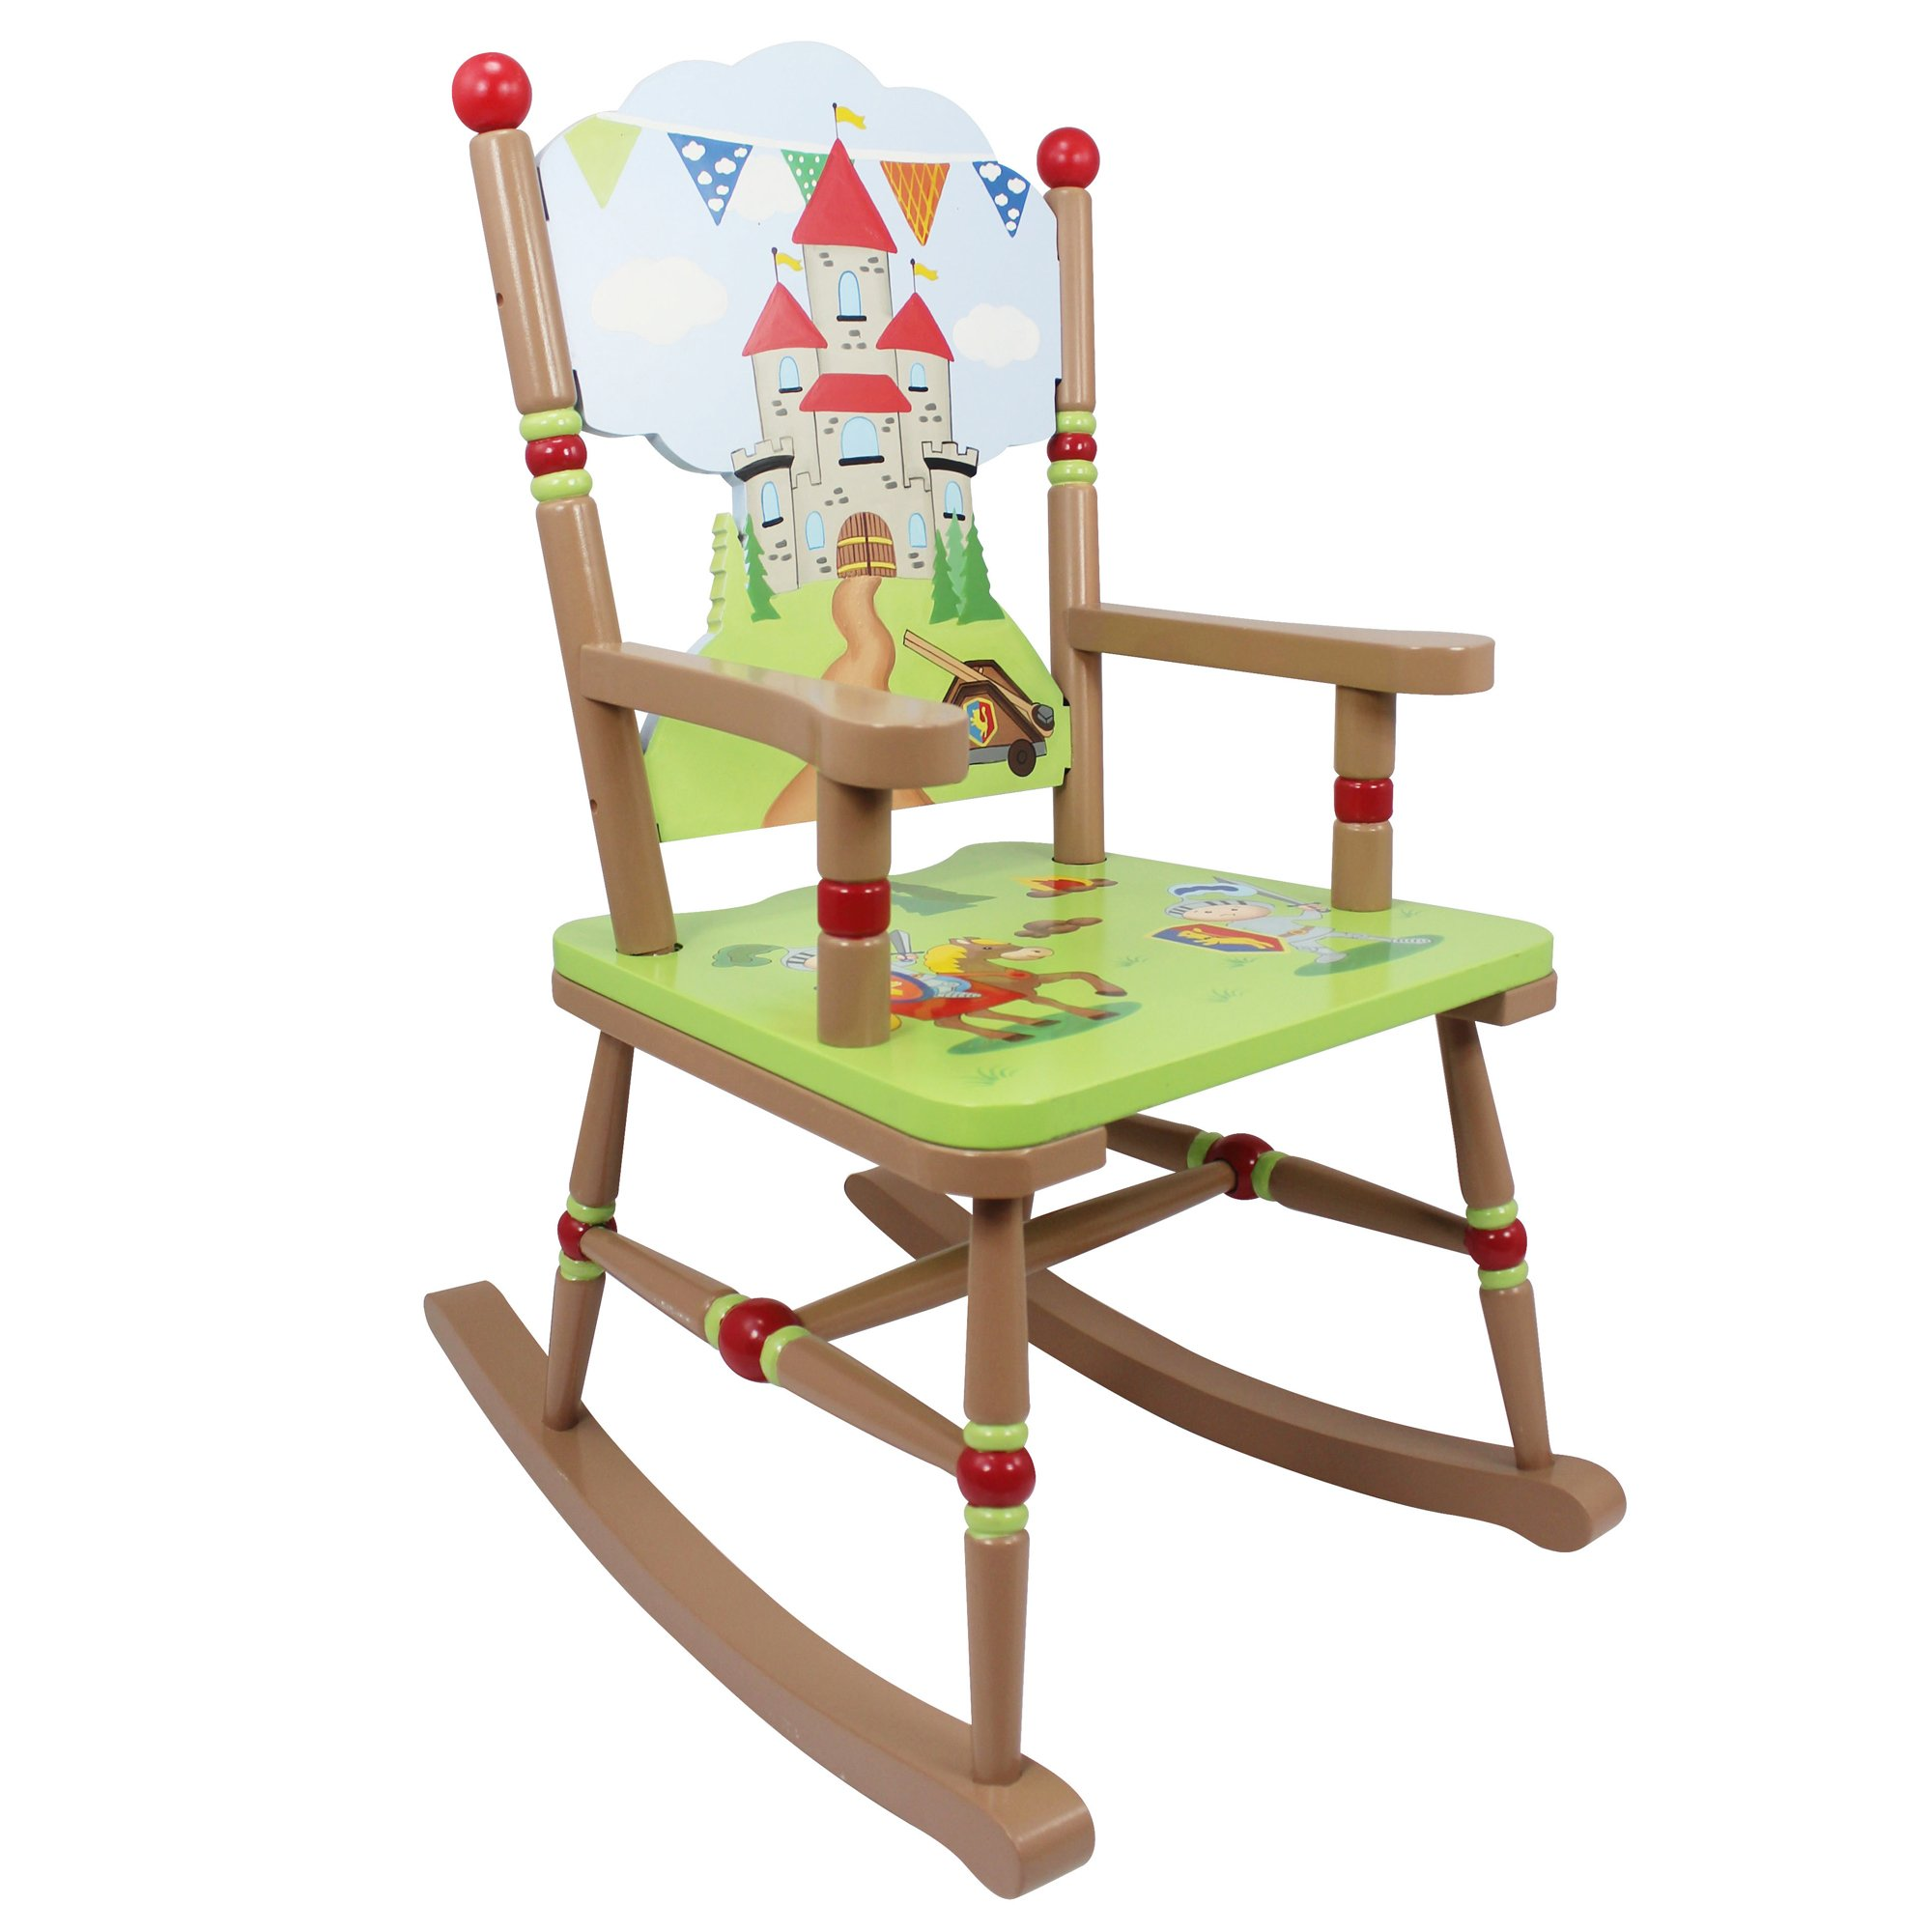 Fantasy Fields - Knights & Dragon Thematic Kids Wooden Rocking Chair | Imagination Inspiring Hand Crafted & Hand Painted Details | Non-Toxic, Lead Free Water-based Paint